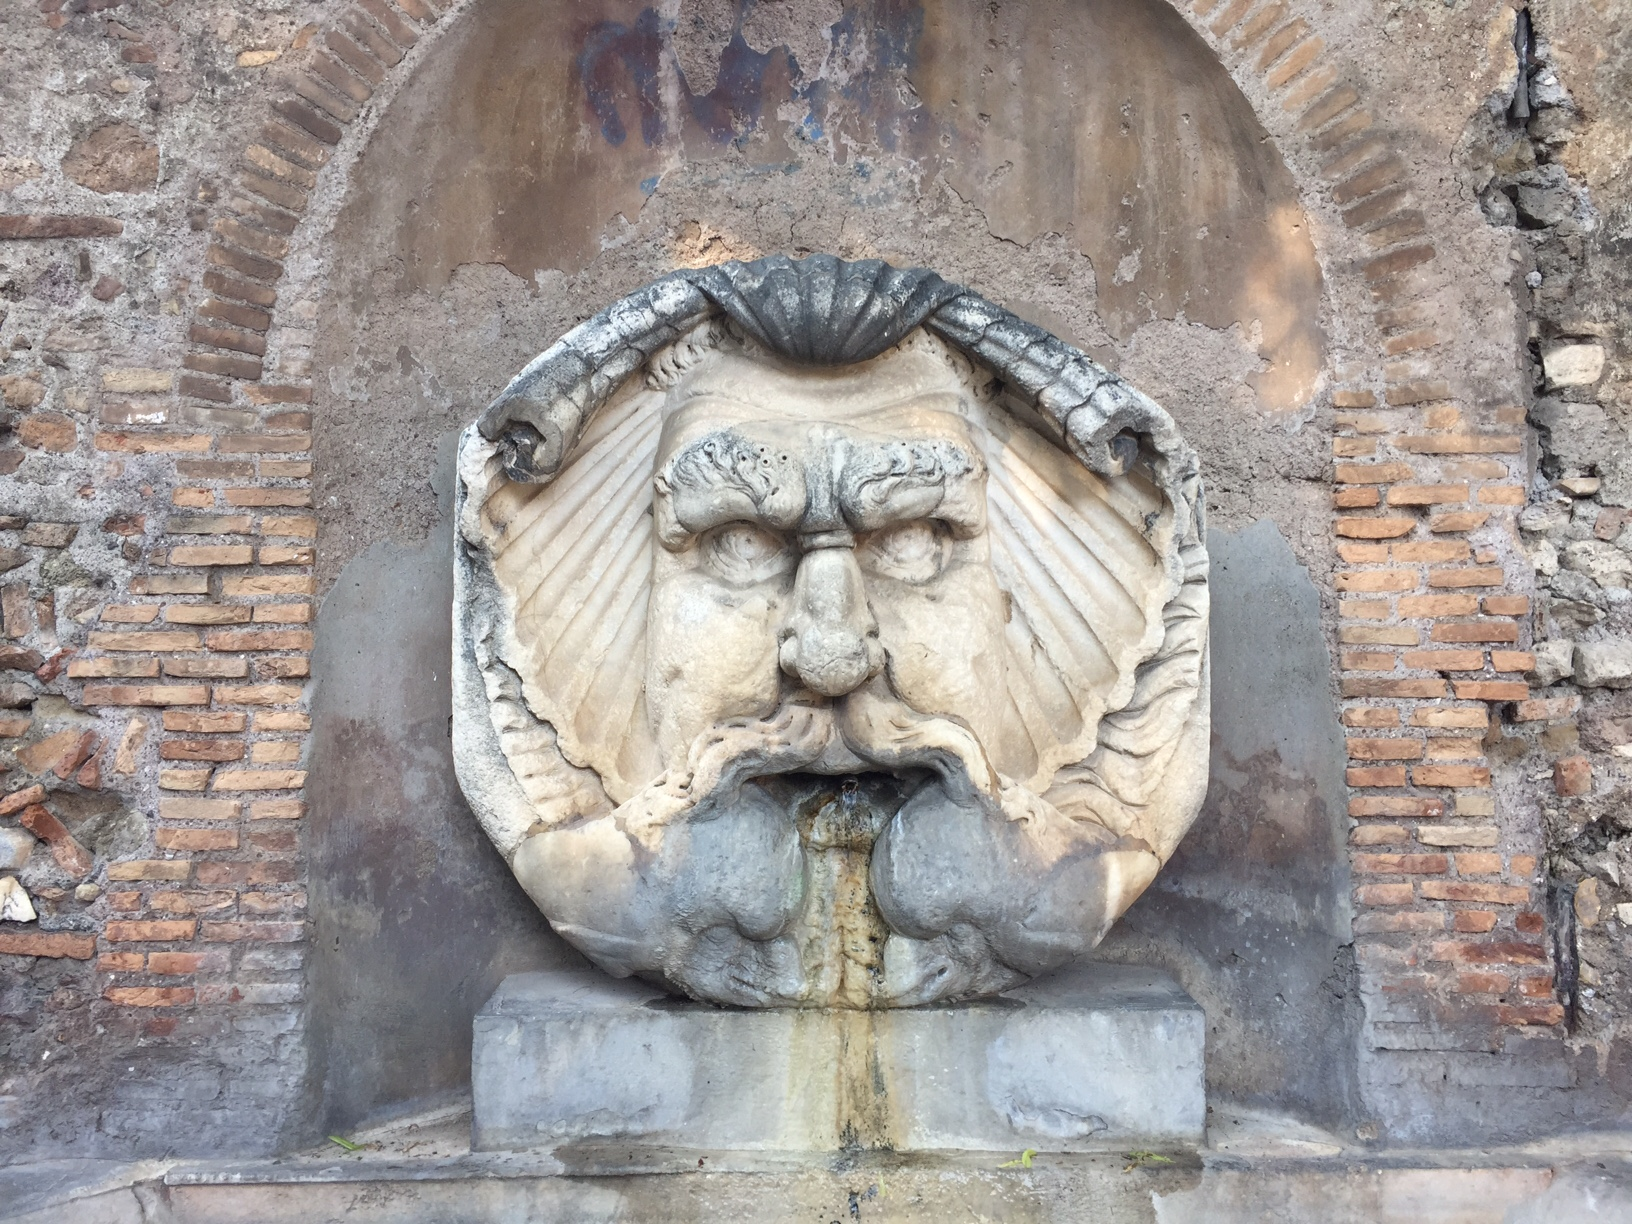 Drinking fountain outside the Basilica of Santa Sabina on the Aventine Hill in Rome.